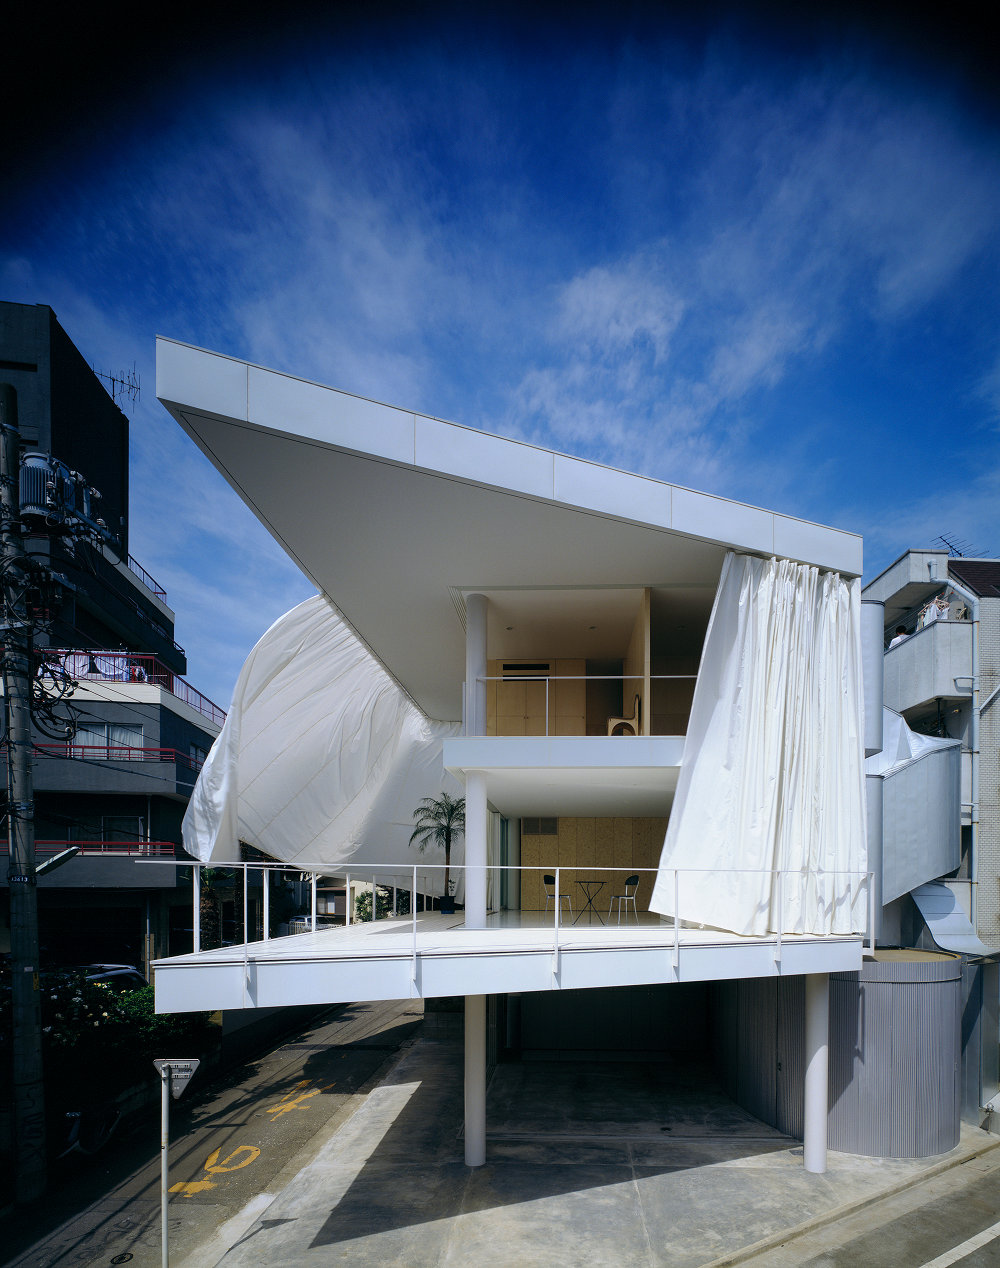 Shigeru-Ban-Curtain-Wall-House-01 Pritzker 2014